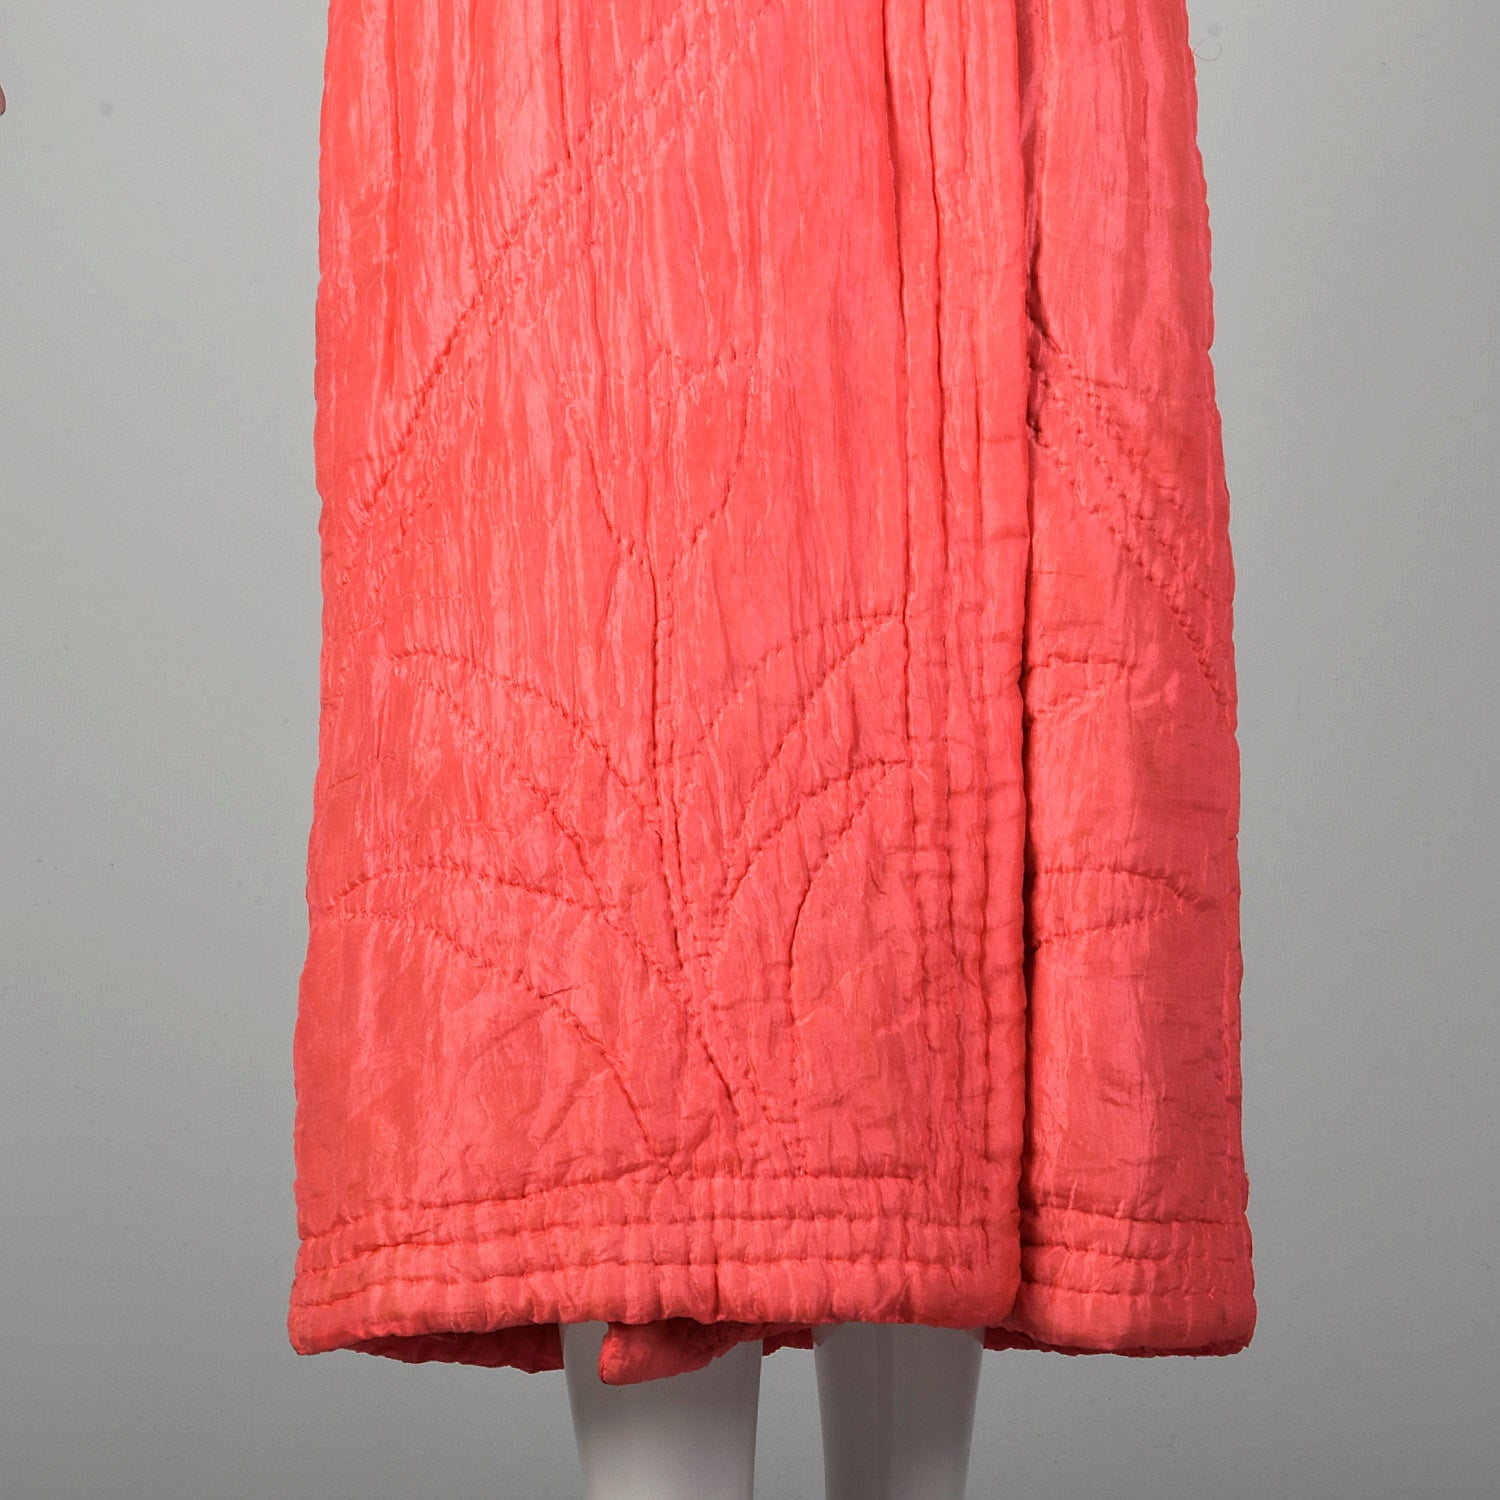 Medium-Large 1930s Pink Quilted Robe